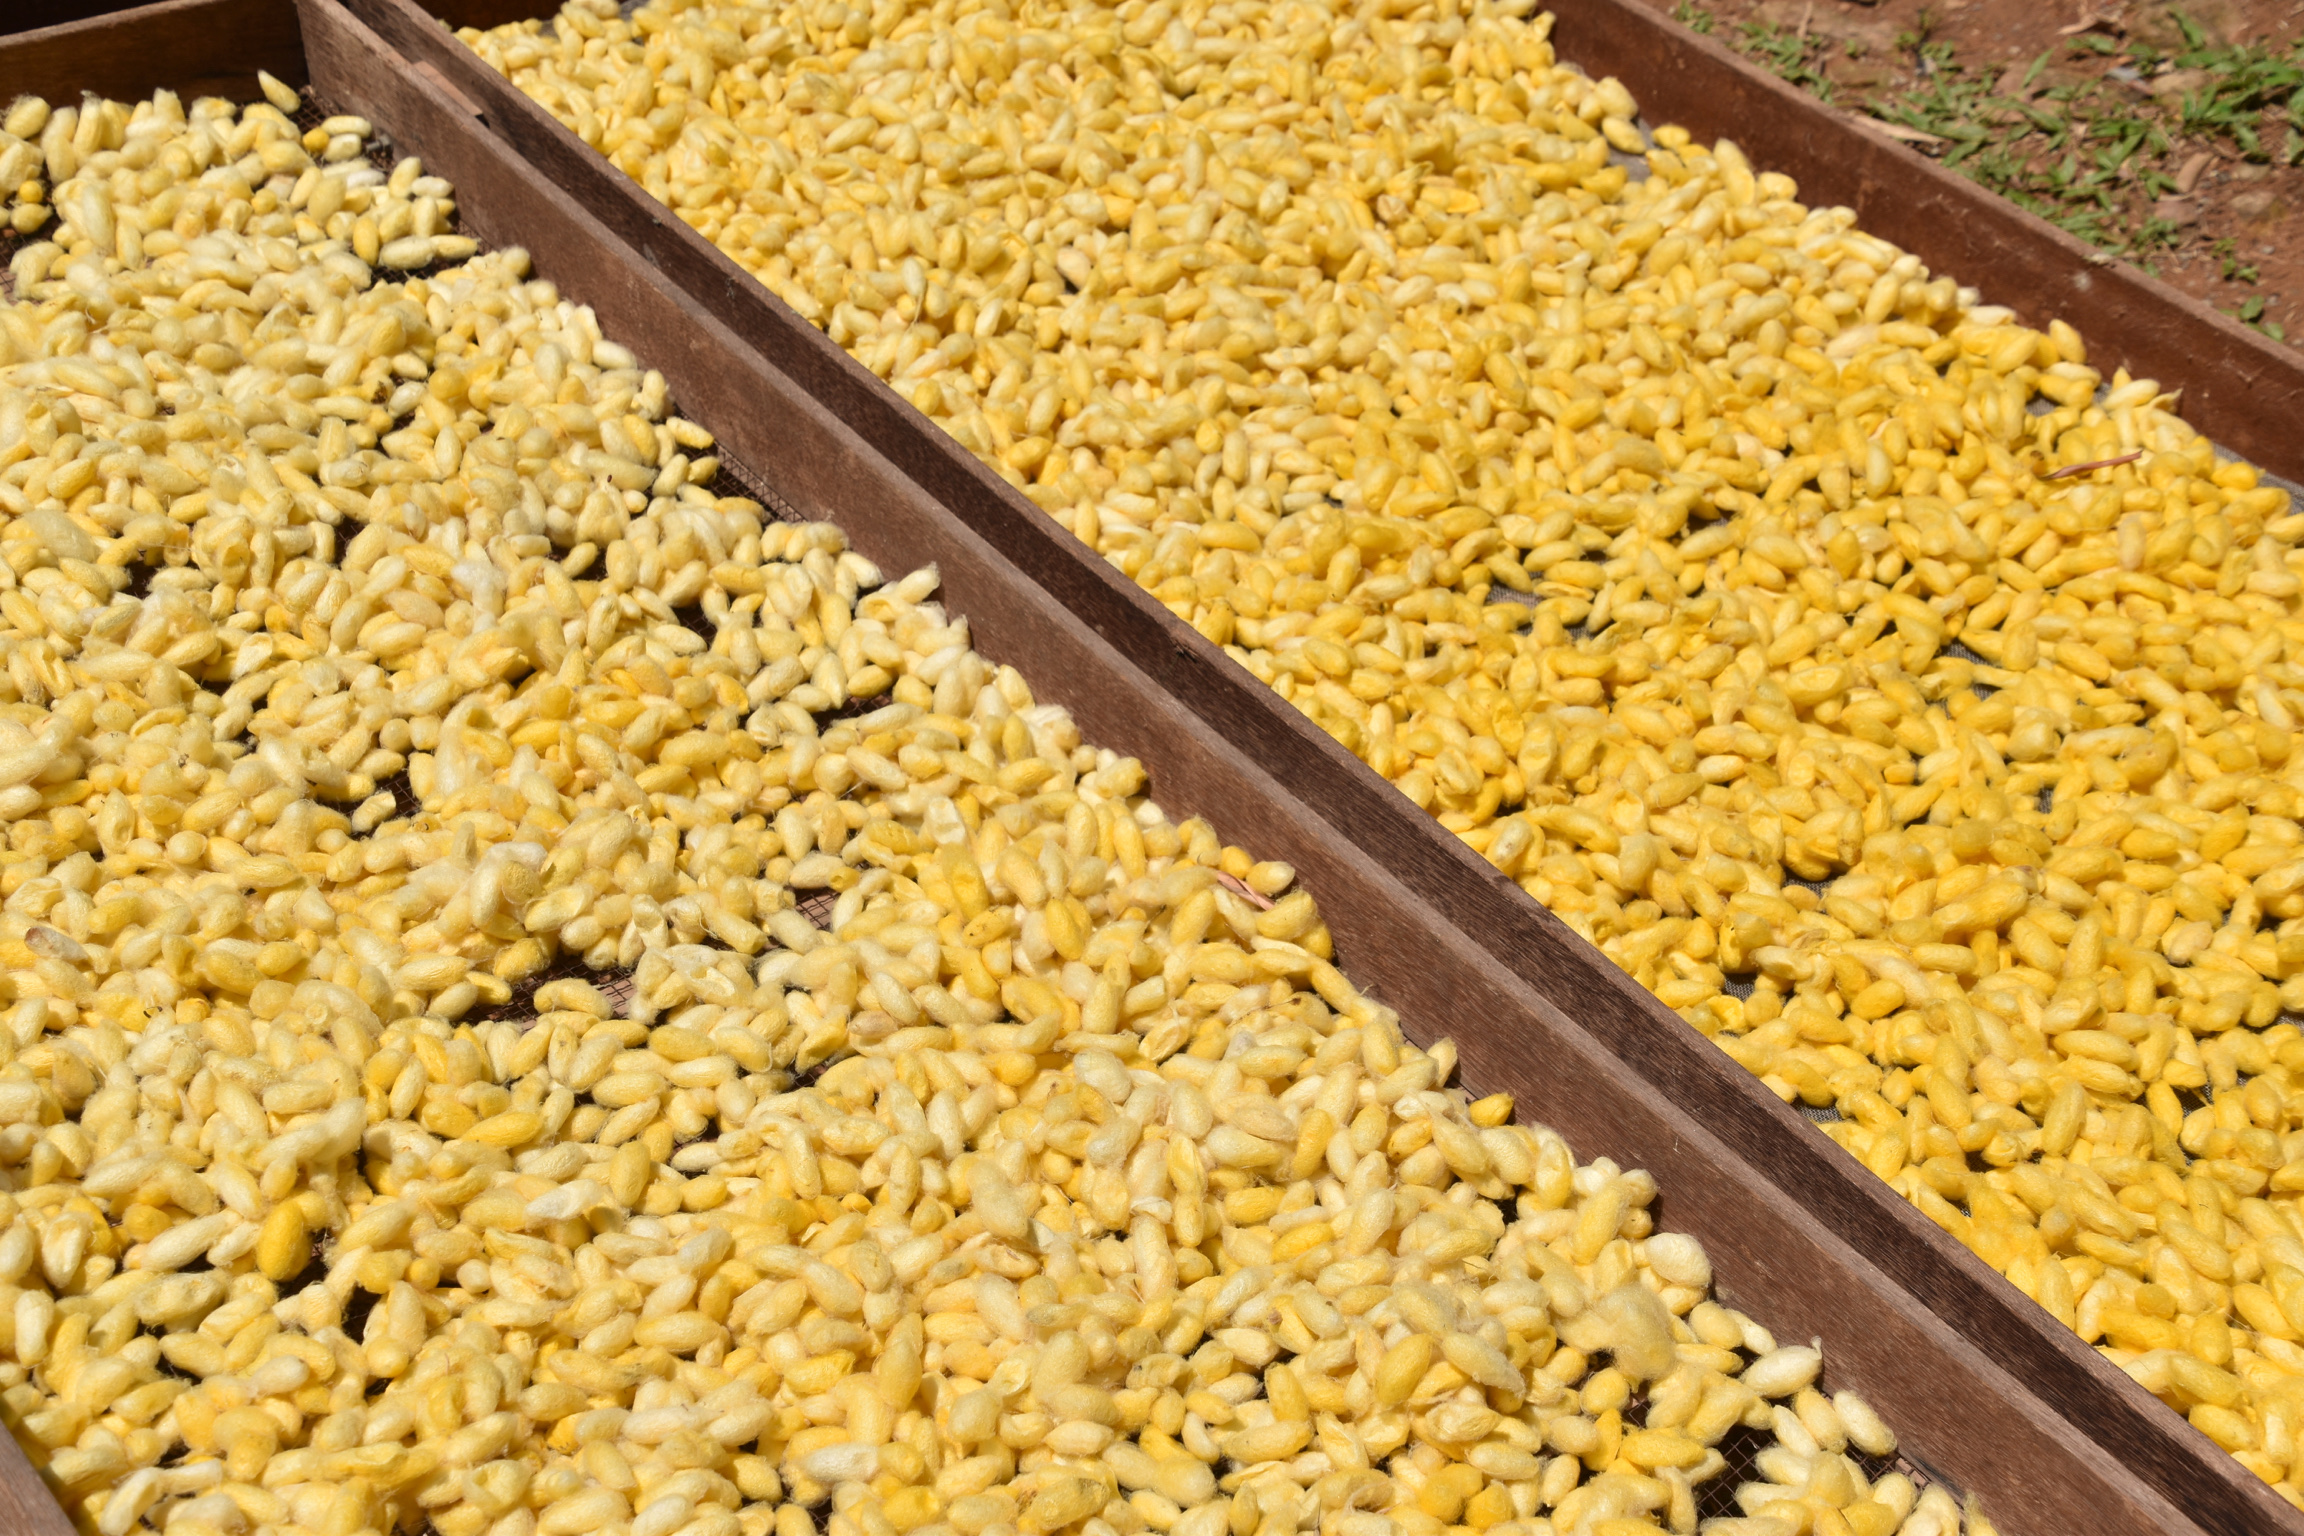 the silk cocoons drying in the sun